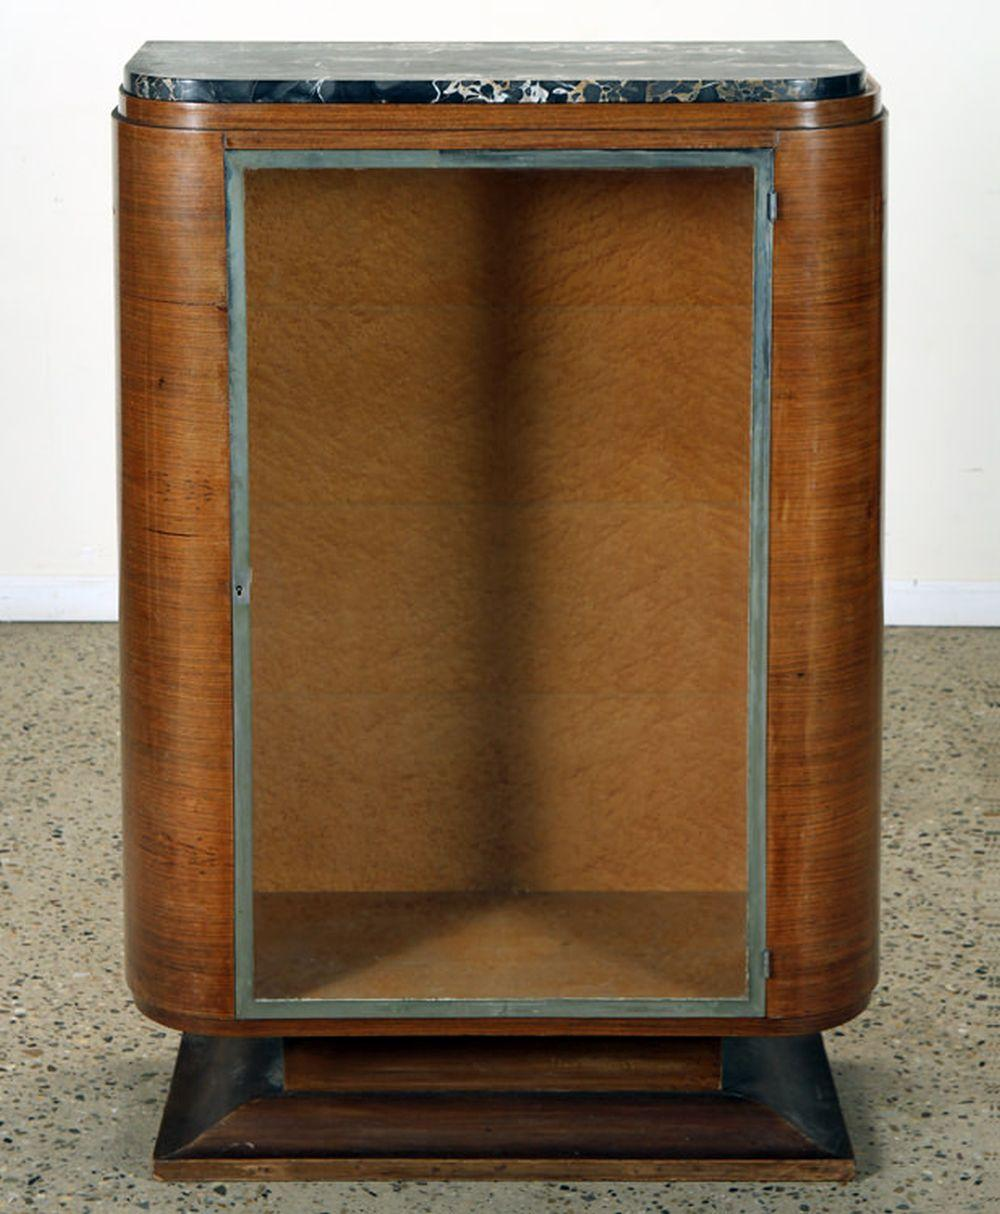 FRENCH ART DECO MARBLE TOP DISPLAY CASE C.1935